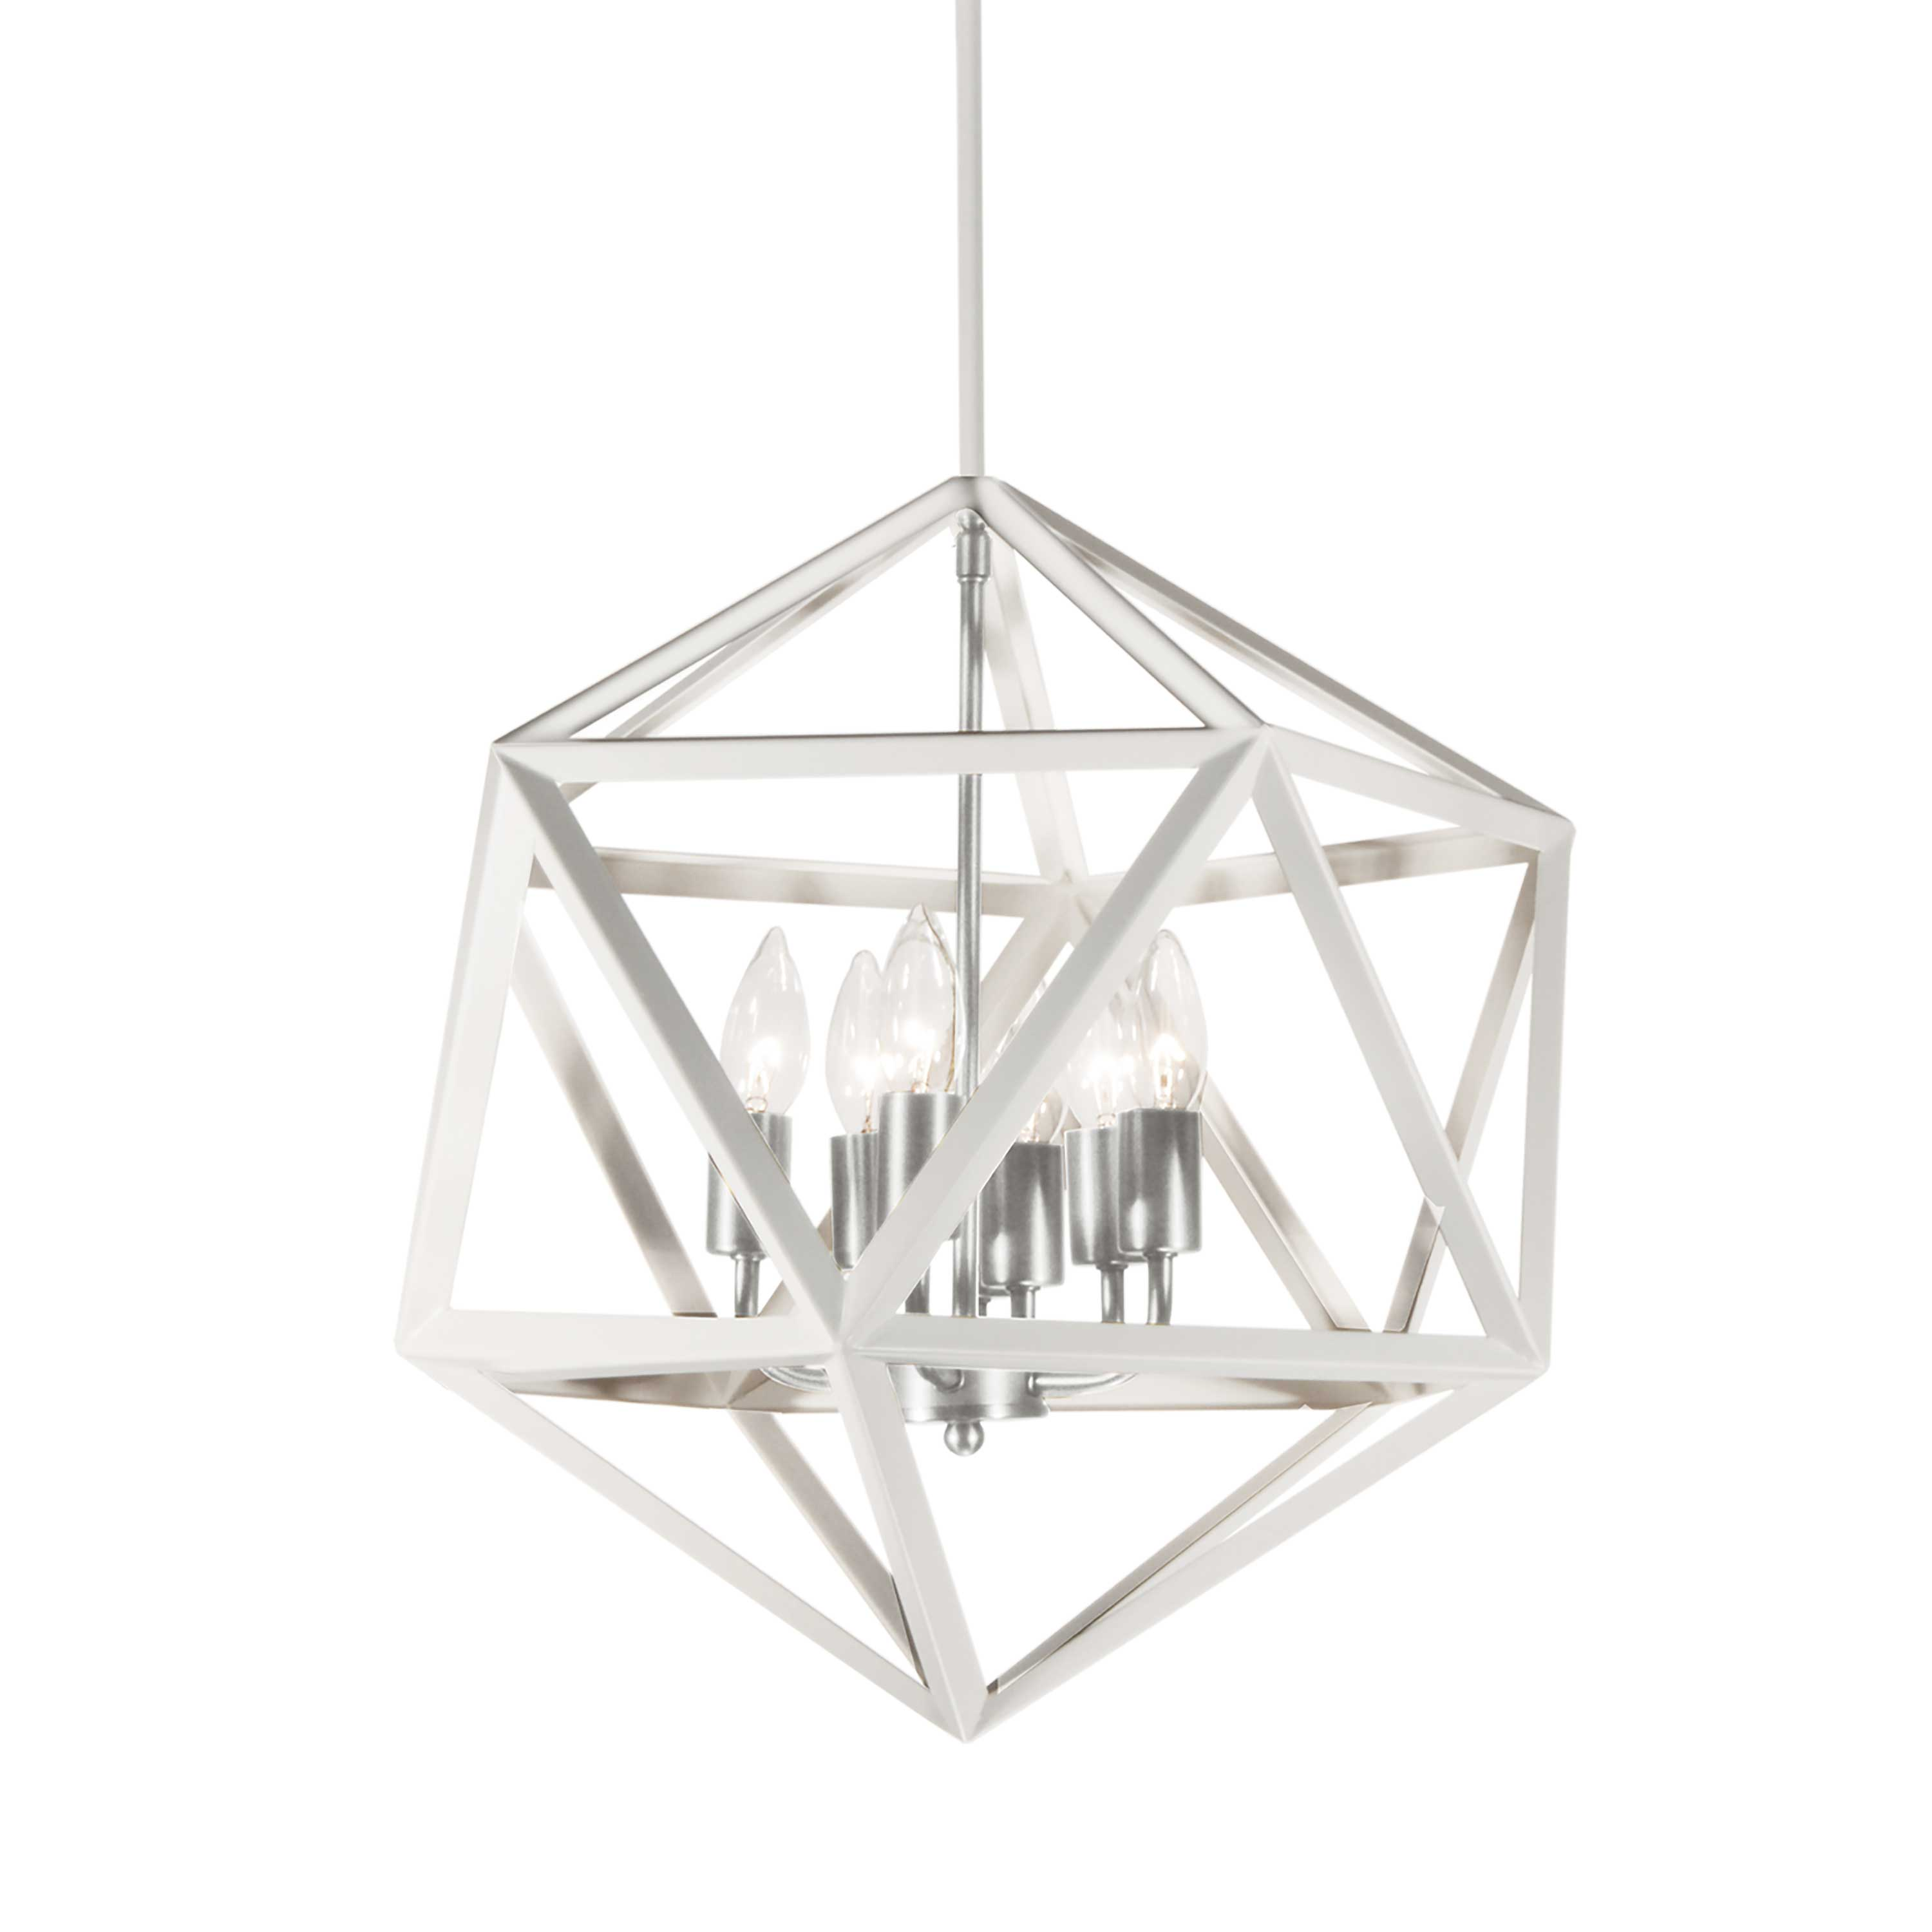 5 Light Chandelier, Matte White with Satin Chrome Accents